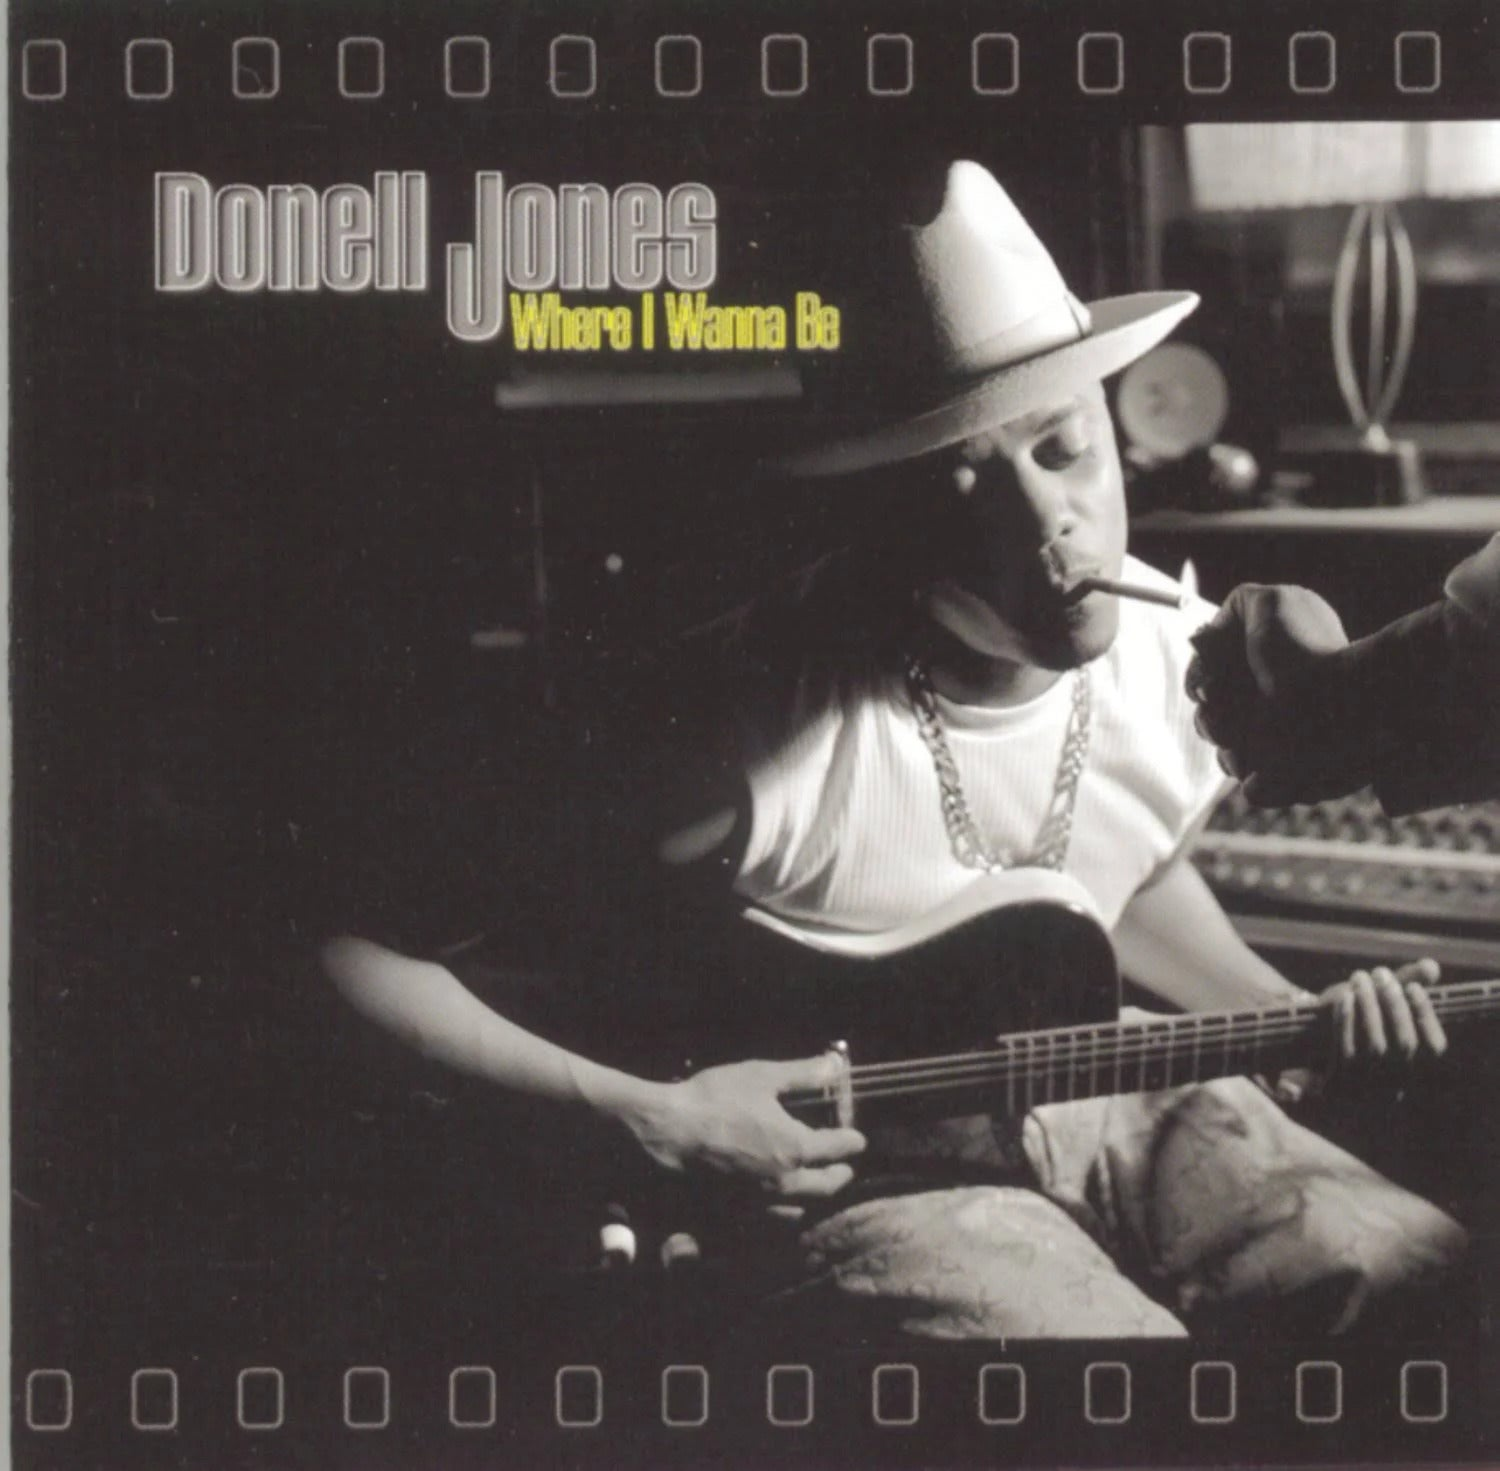 Donell Jones - Where I Wanna Be [CD]